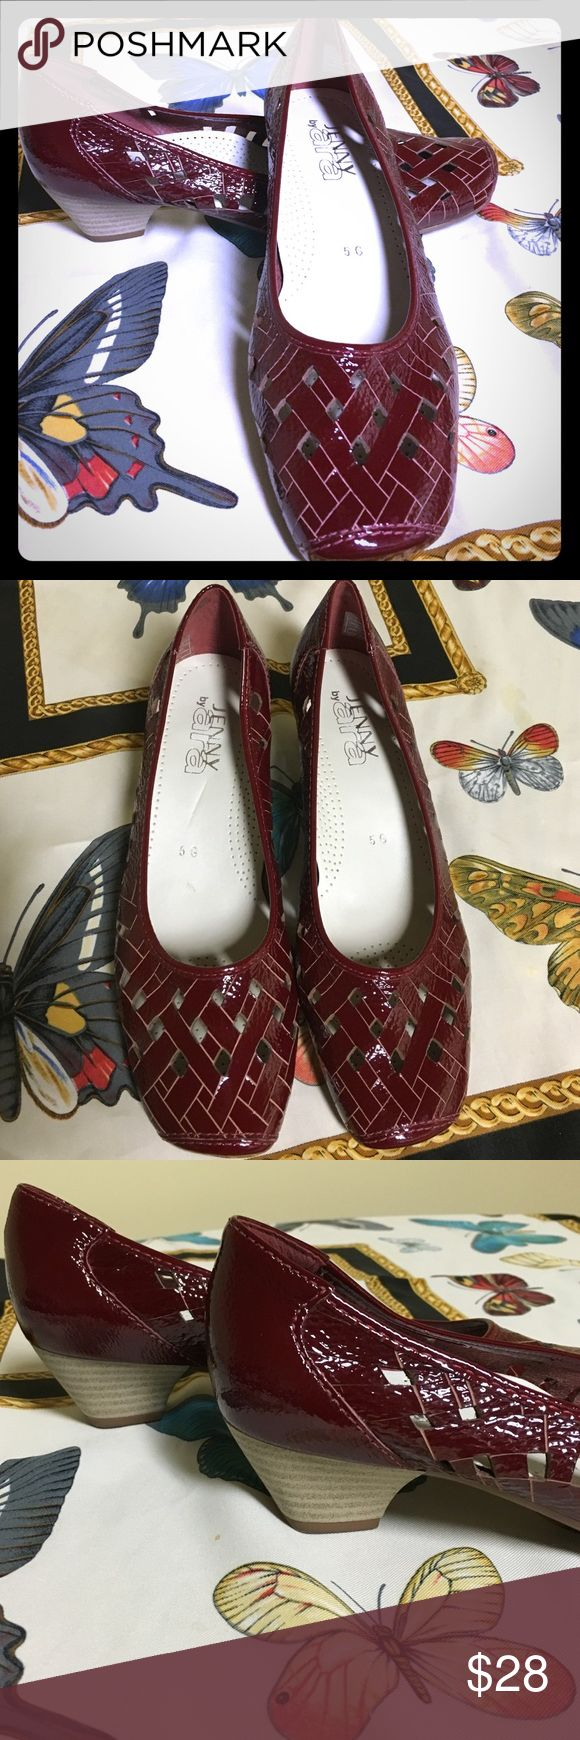 """Jenny by Ara Burgundy Patent Lattice Low Heel Pump Beautiful, comfortable and in great condition. Soft patent leather in a lattice pattern. Clean and great looking. Nice cushioned insole. Minimal wear. Size is marked 5G. About a US 7.5. I am a size 7 and they are about 1/2 size too big for me. Heel is 1.5"""". Insole heel to toe measures approx 10"""". Excellent 'comfort' shoe! Beautiful burgundy/maroon color. Like black cherry😜 Jenny by Ara Shoes Heels"""